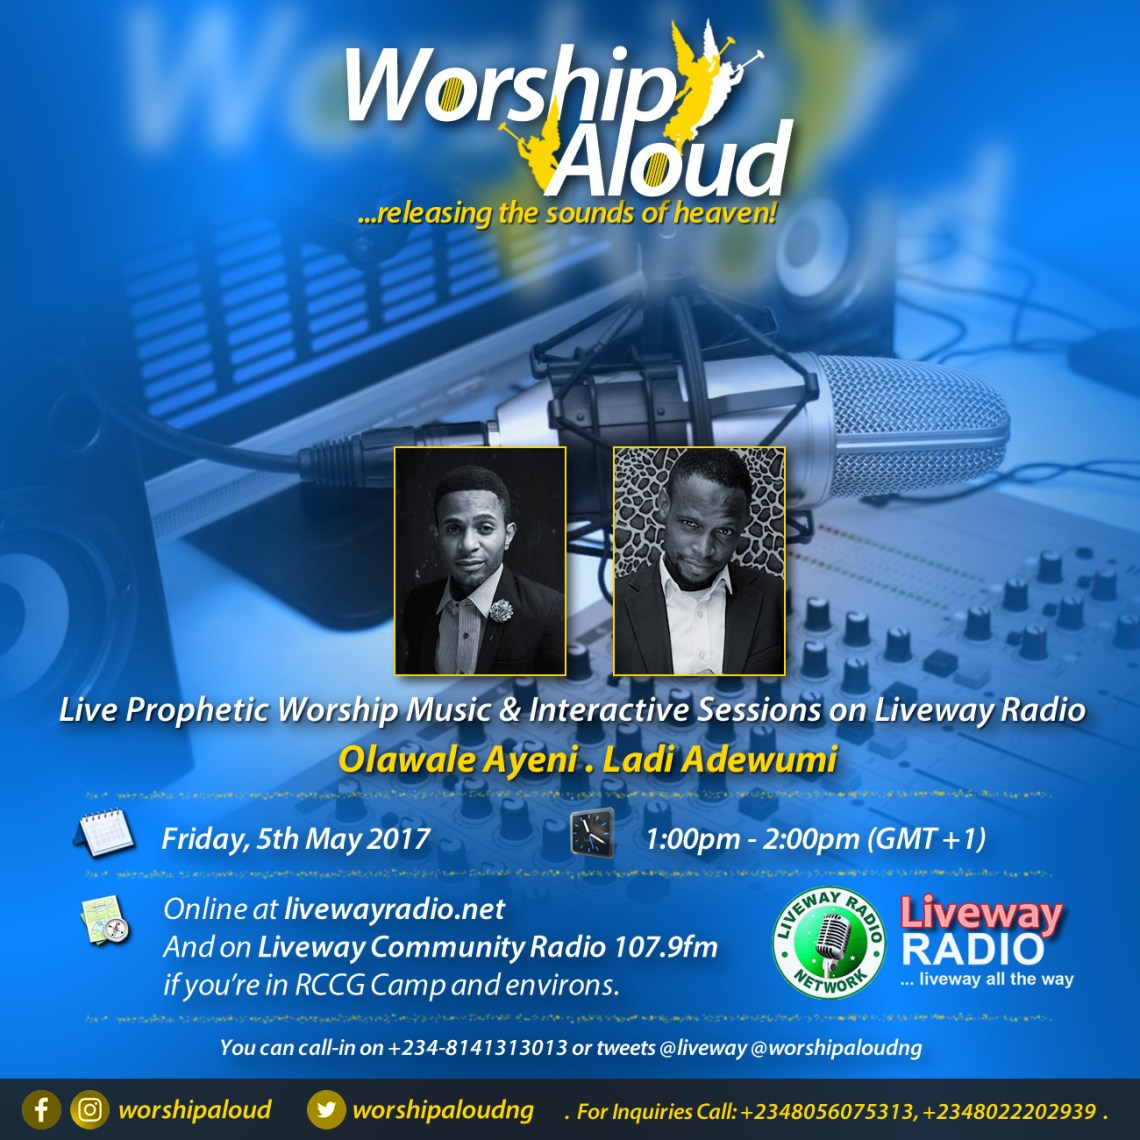 Worship Aloud ...releasing the sounds of heaven! on Liveway Radio